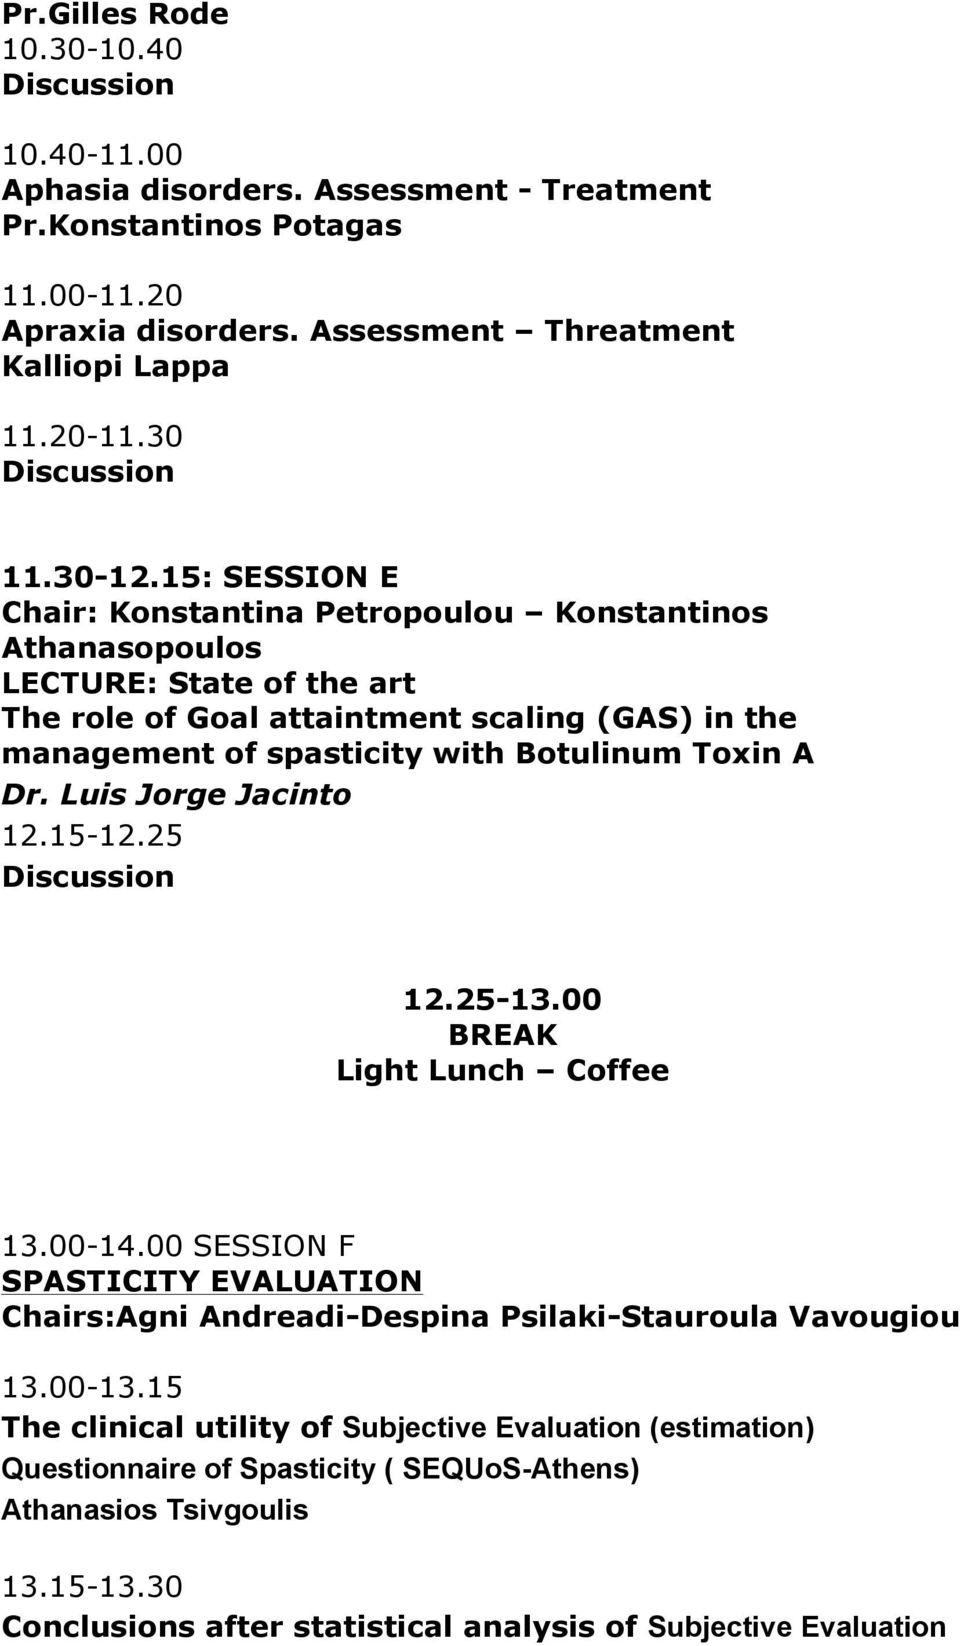 A Dr. Luis Jorge Jacinto 12.15-12.25 12.25-13.00 BREAK Light Lunch Coffee 13.00-14.00 SESSION F SPASTICITY EVALUATION Chairs:Agni Andreadi-Despina Psilaki-Stauroula Vavougiou 13.00-13.